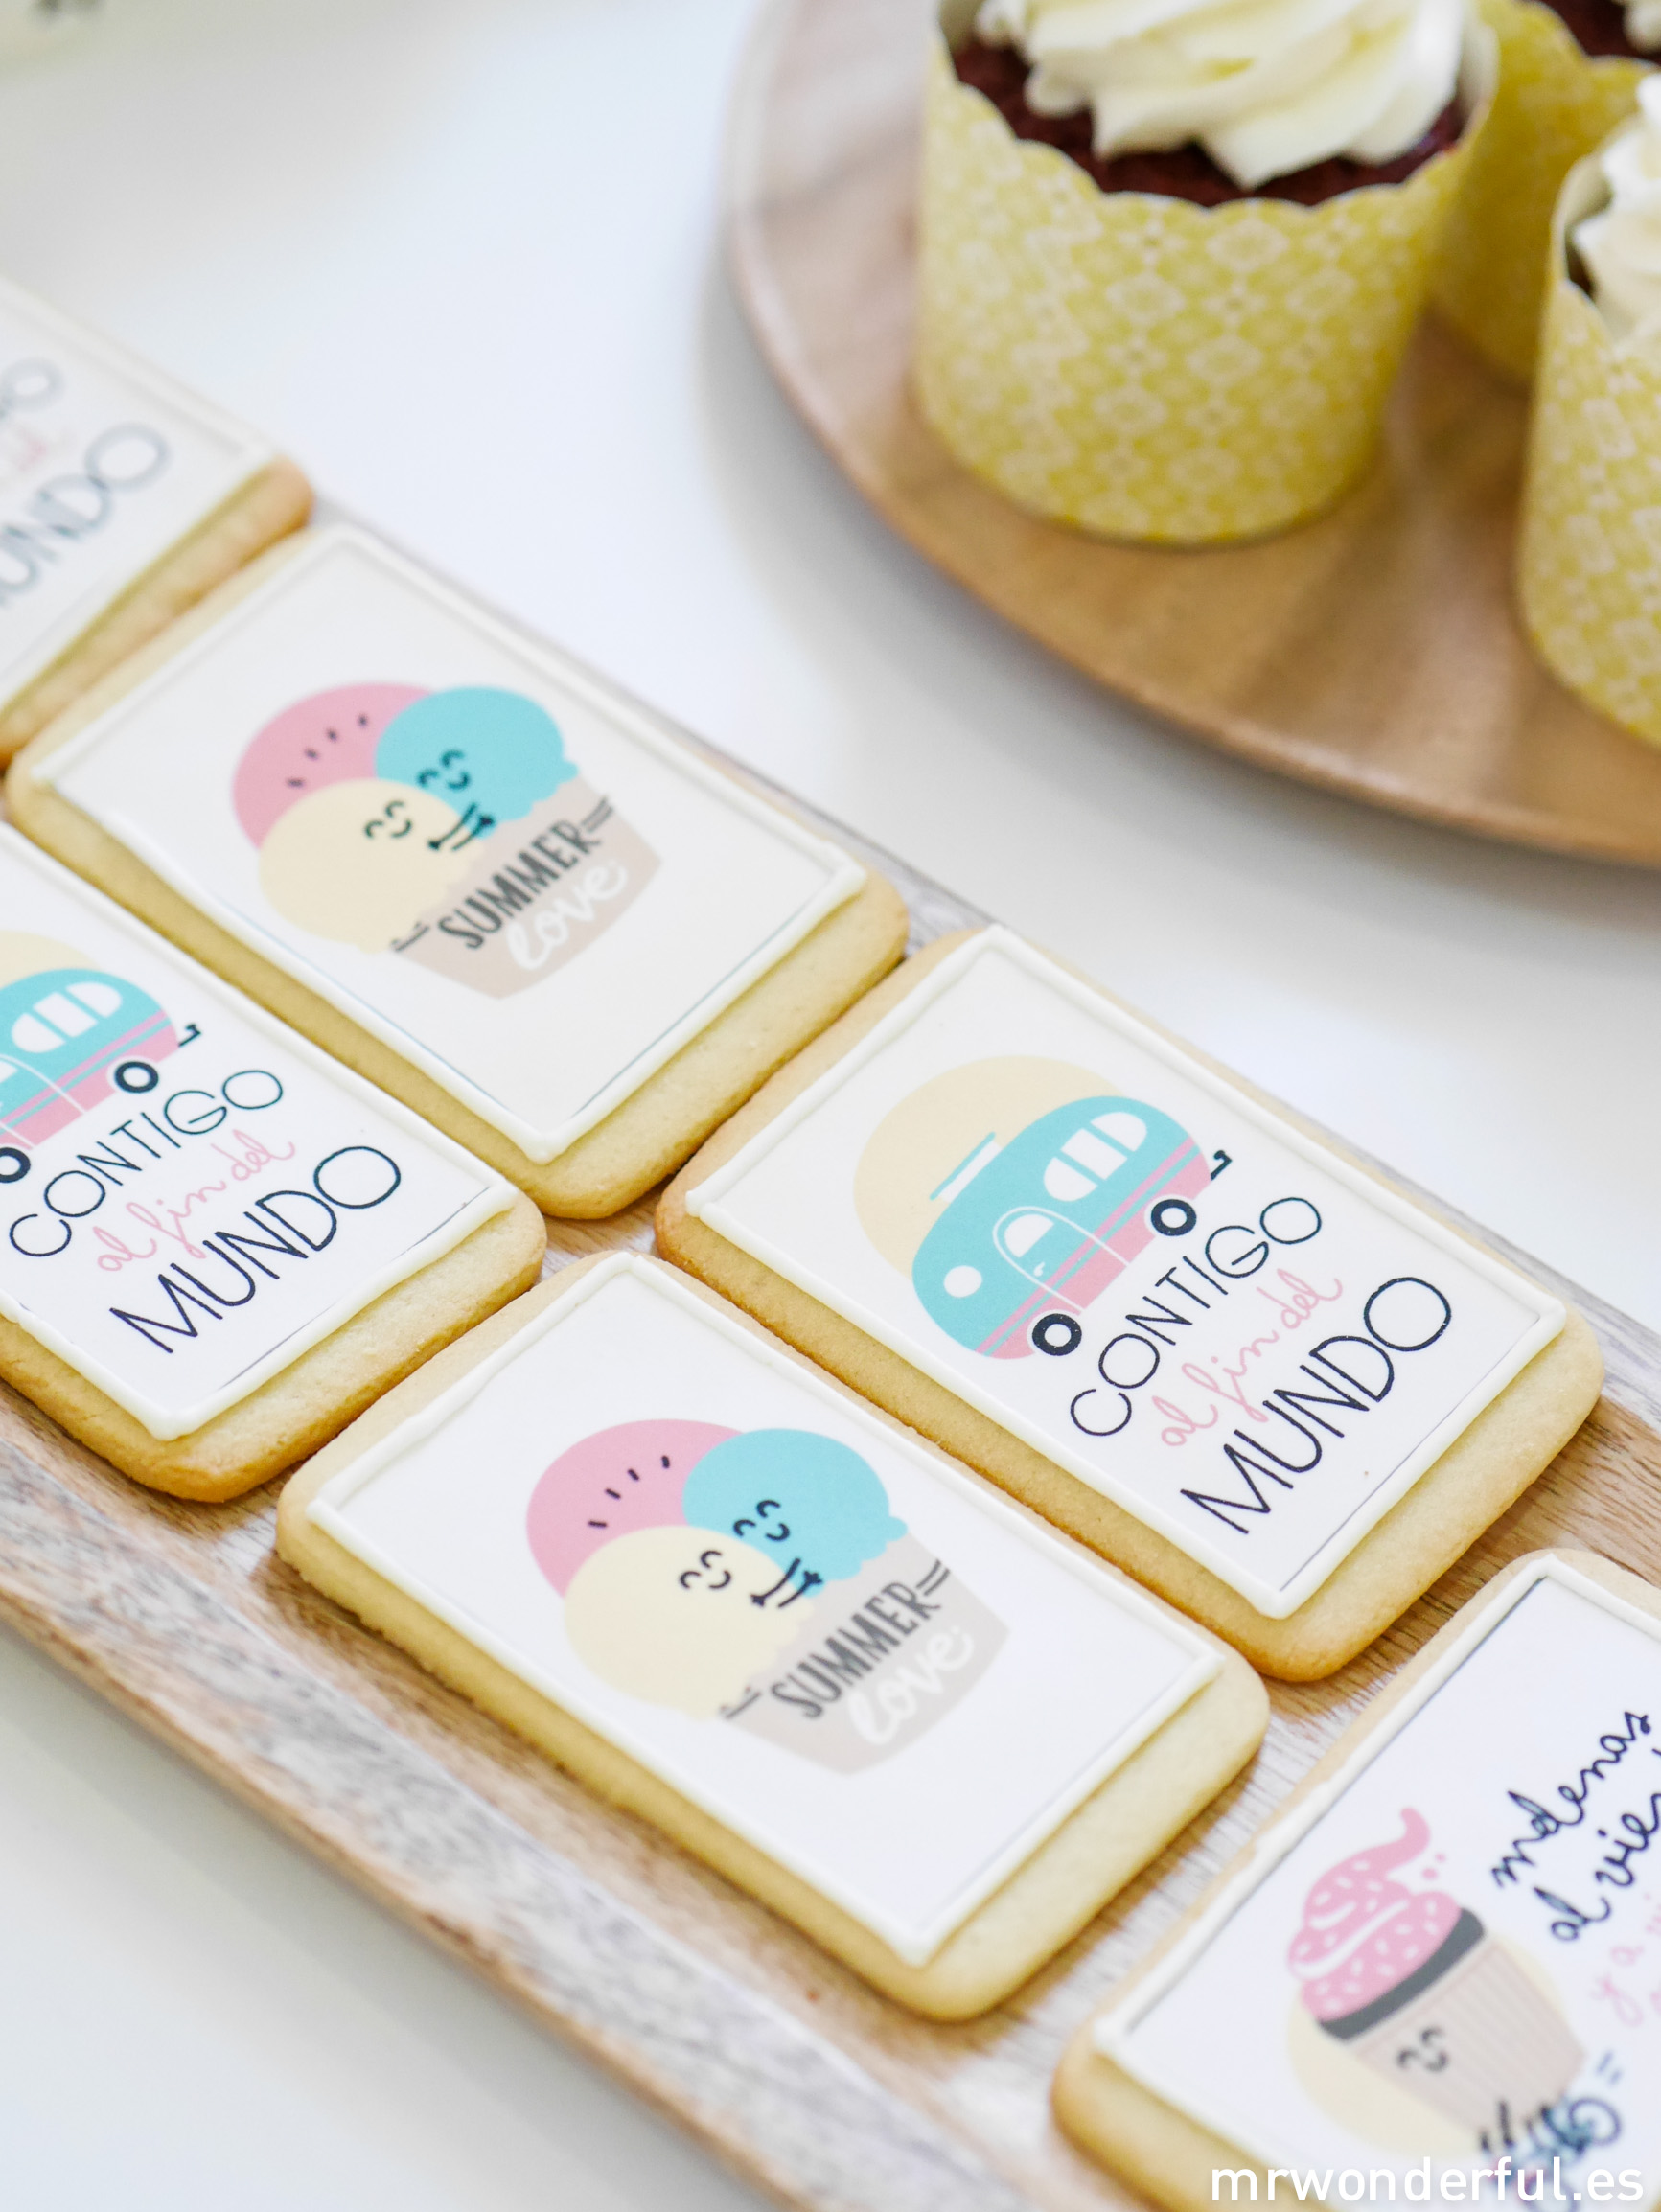 mrwonderful_Curso-Packaging_Bego_teaonthemoon-49